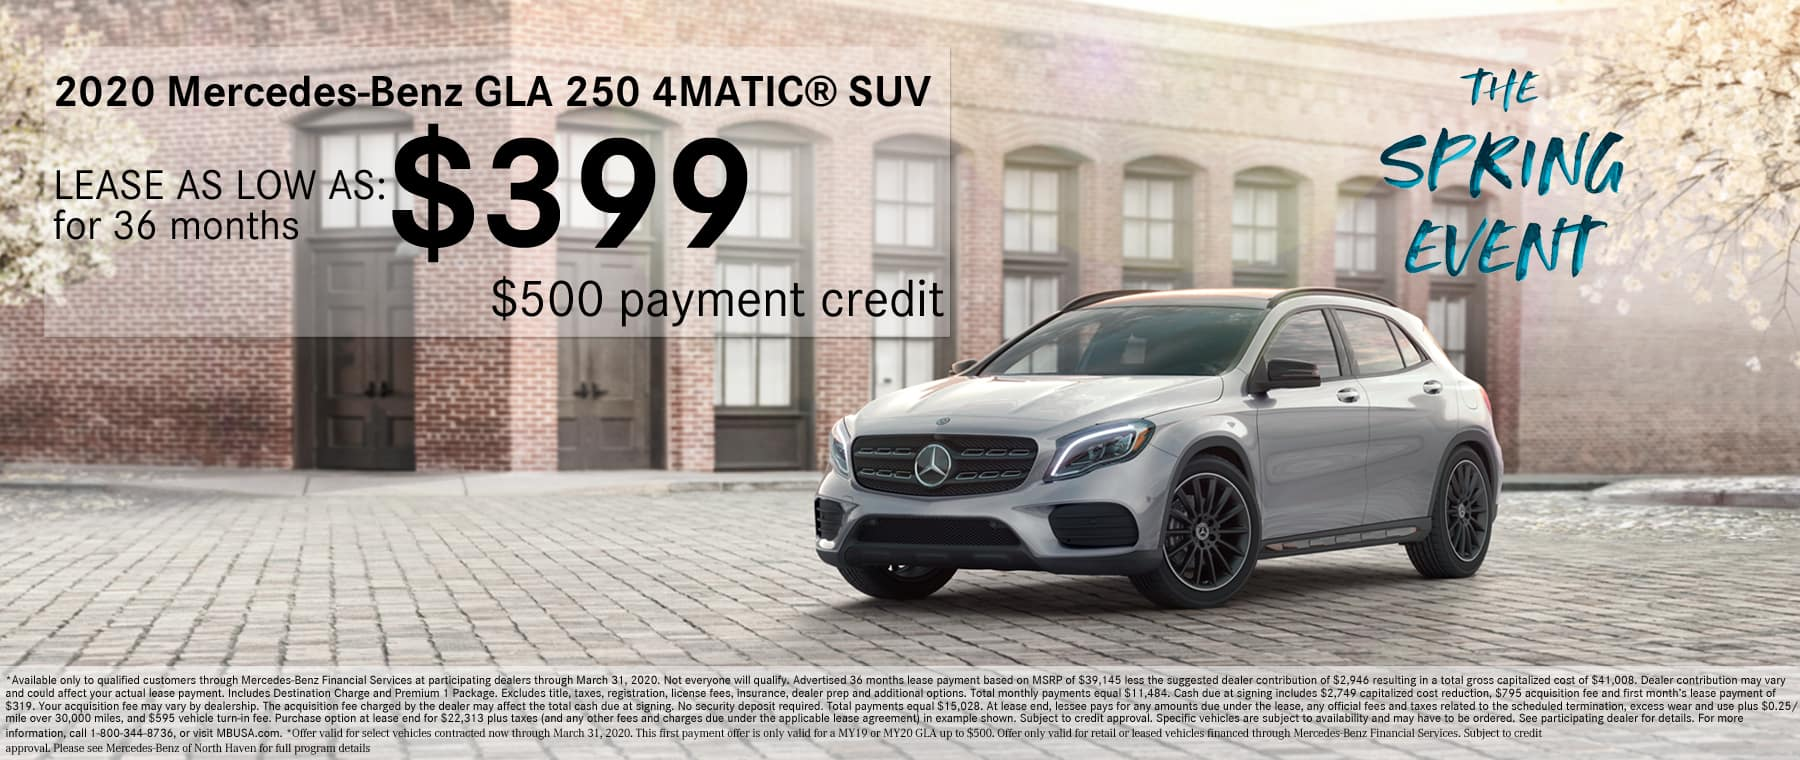 Mercedes-Benz of North Haven GLA Lease Special